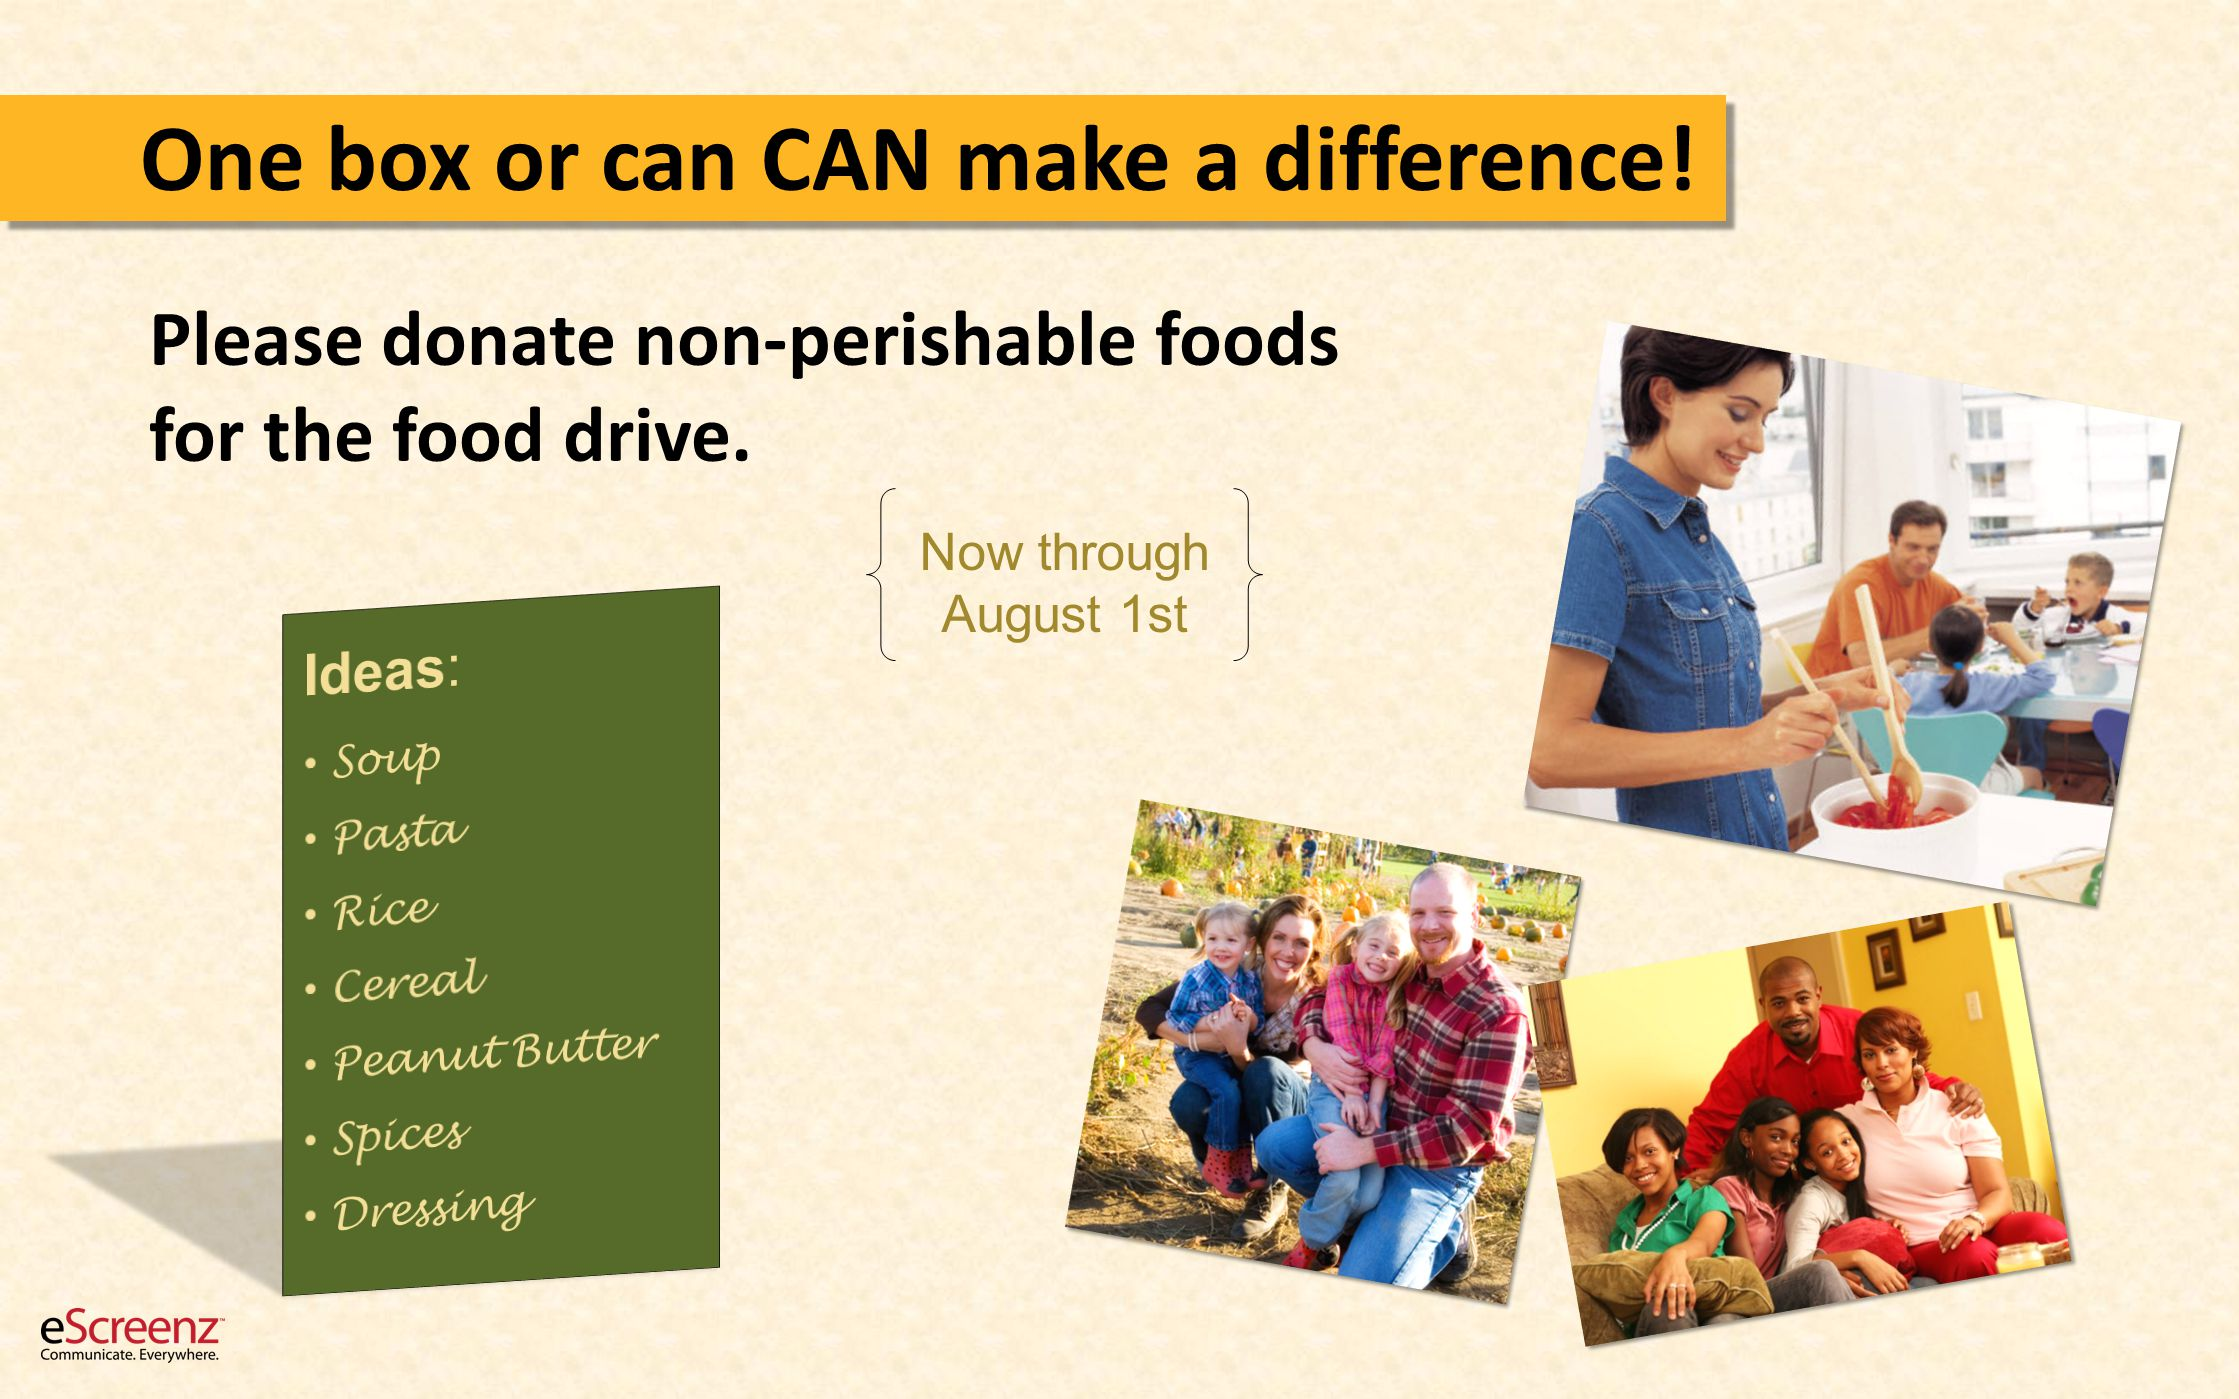 One box or can CAN make a difference. Please donate non-perishable foods for the food drive.